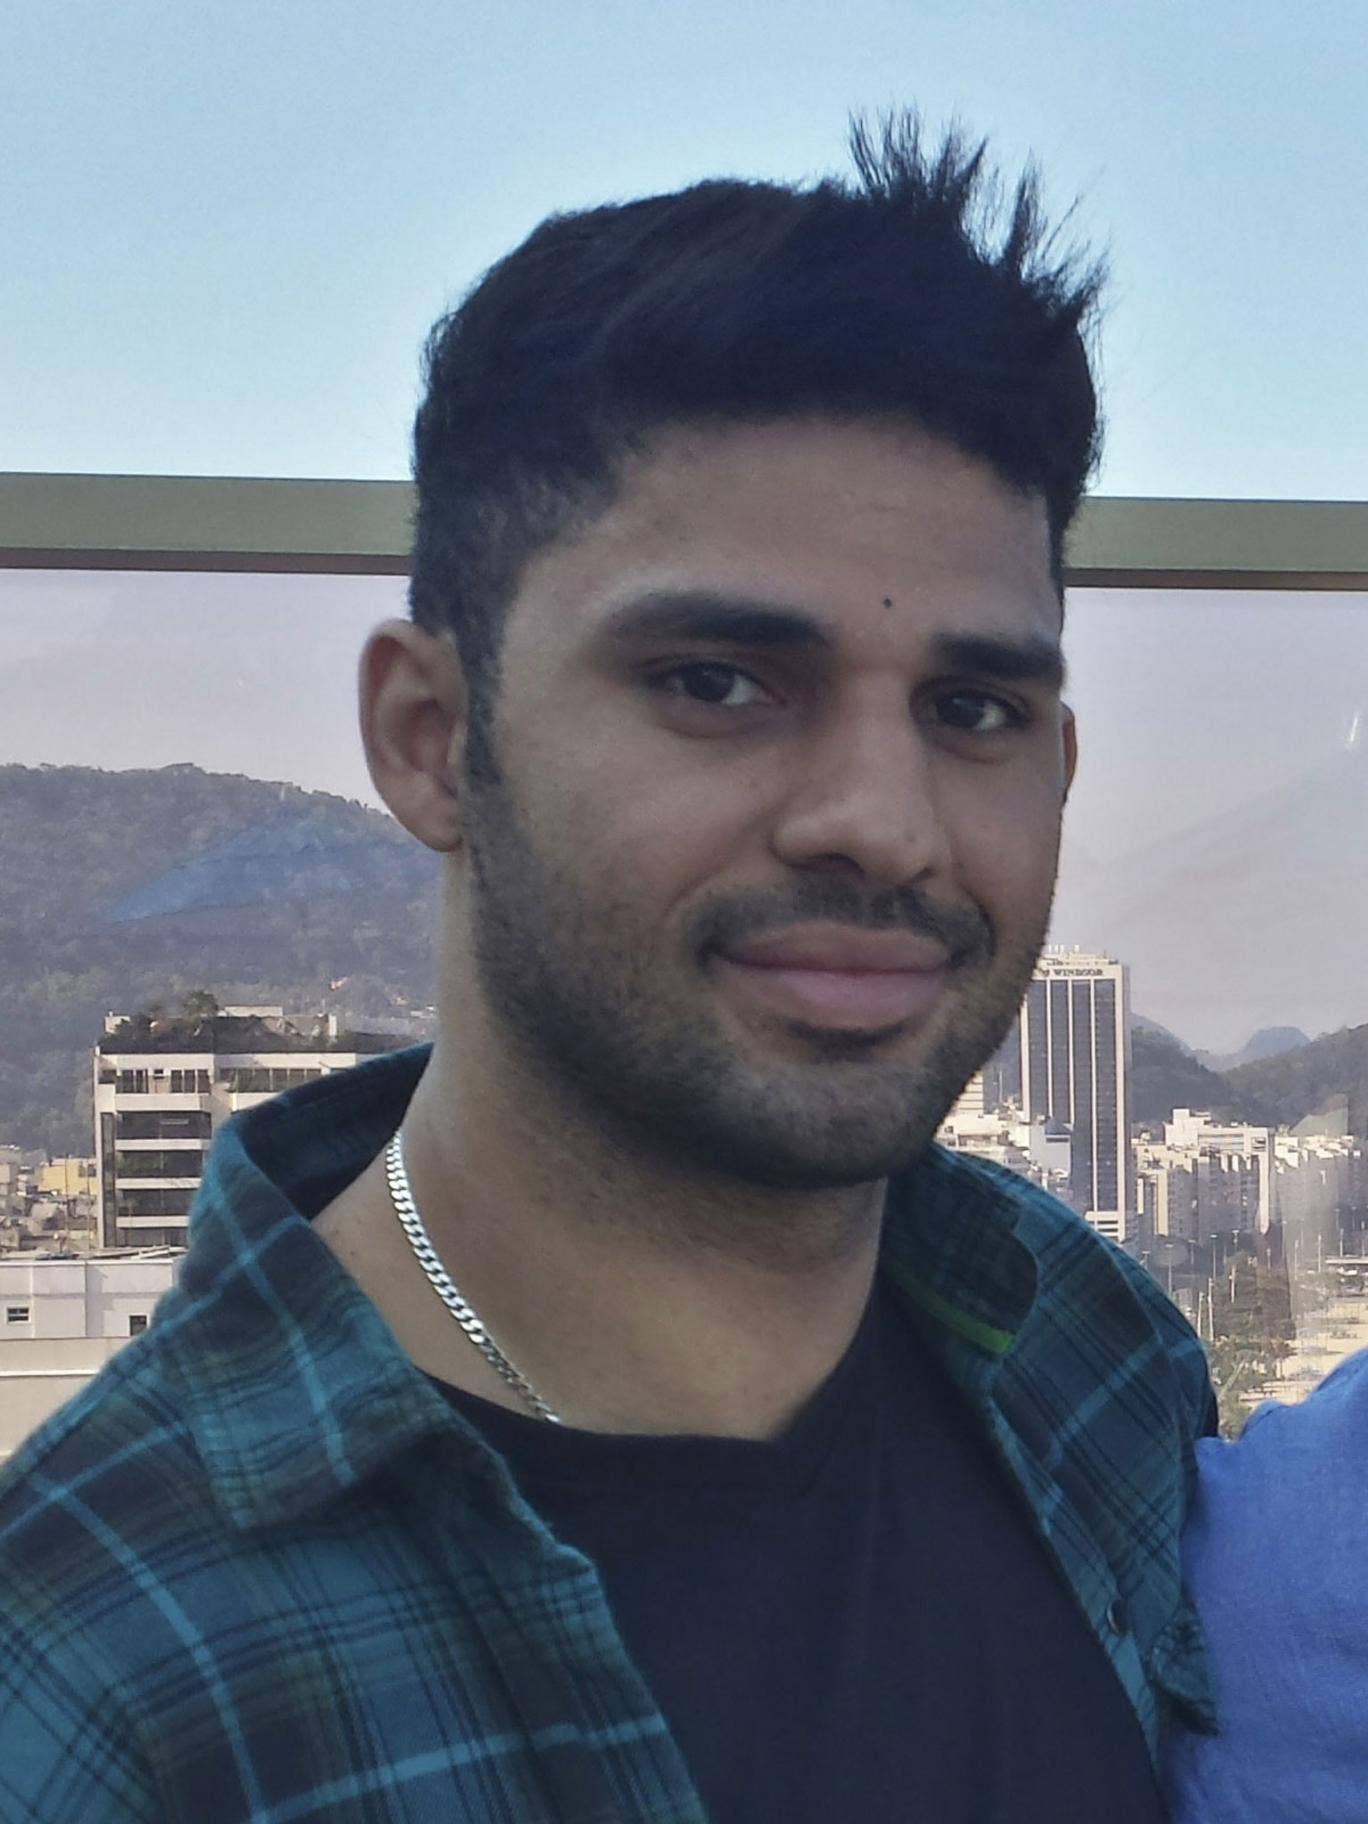 David Miranda was detained at Heathrow airport under schedule 7 of the Terrorism Act as he travelled from Berlin to Rio de Janeiro. He had his mobile phone, laptop, DVDs and other items seized